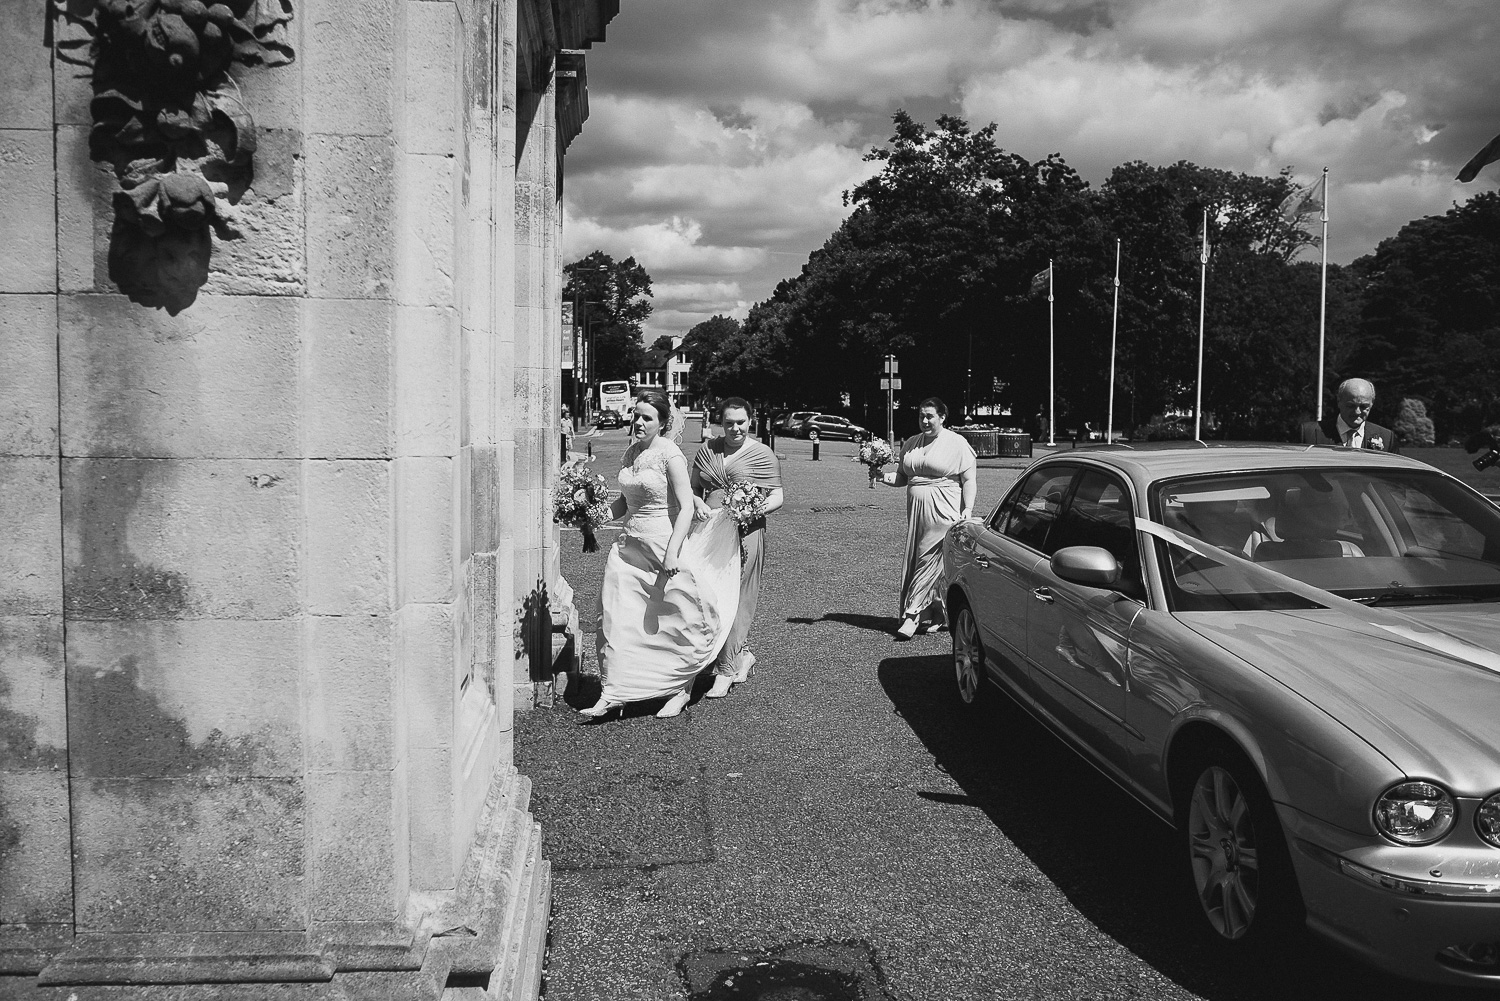 wedding-photographer-cardiff-university-2.jpg